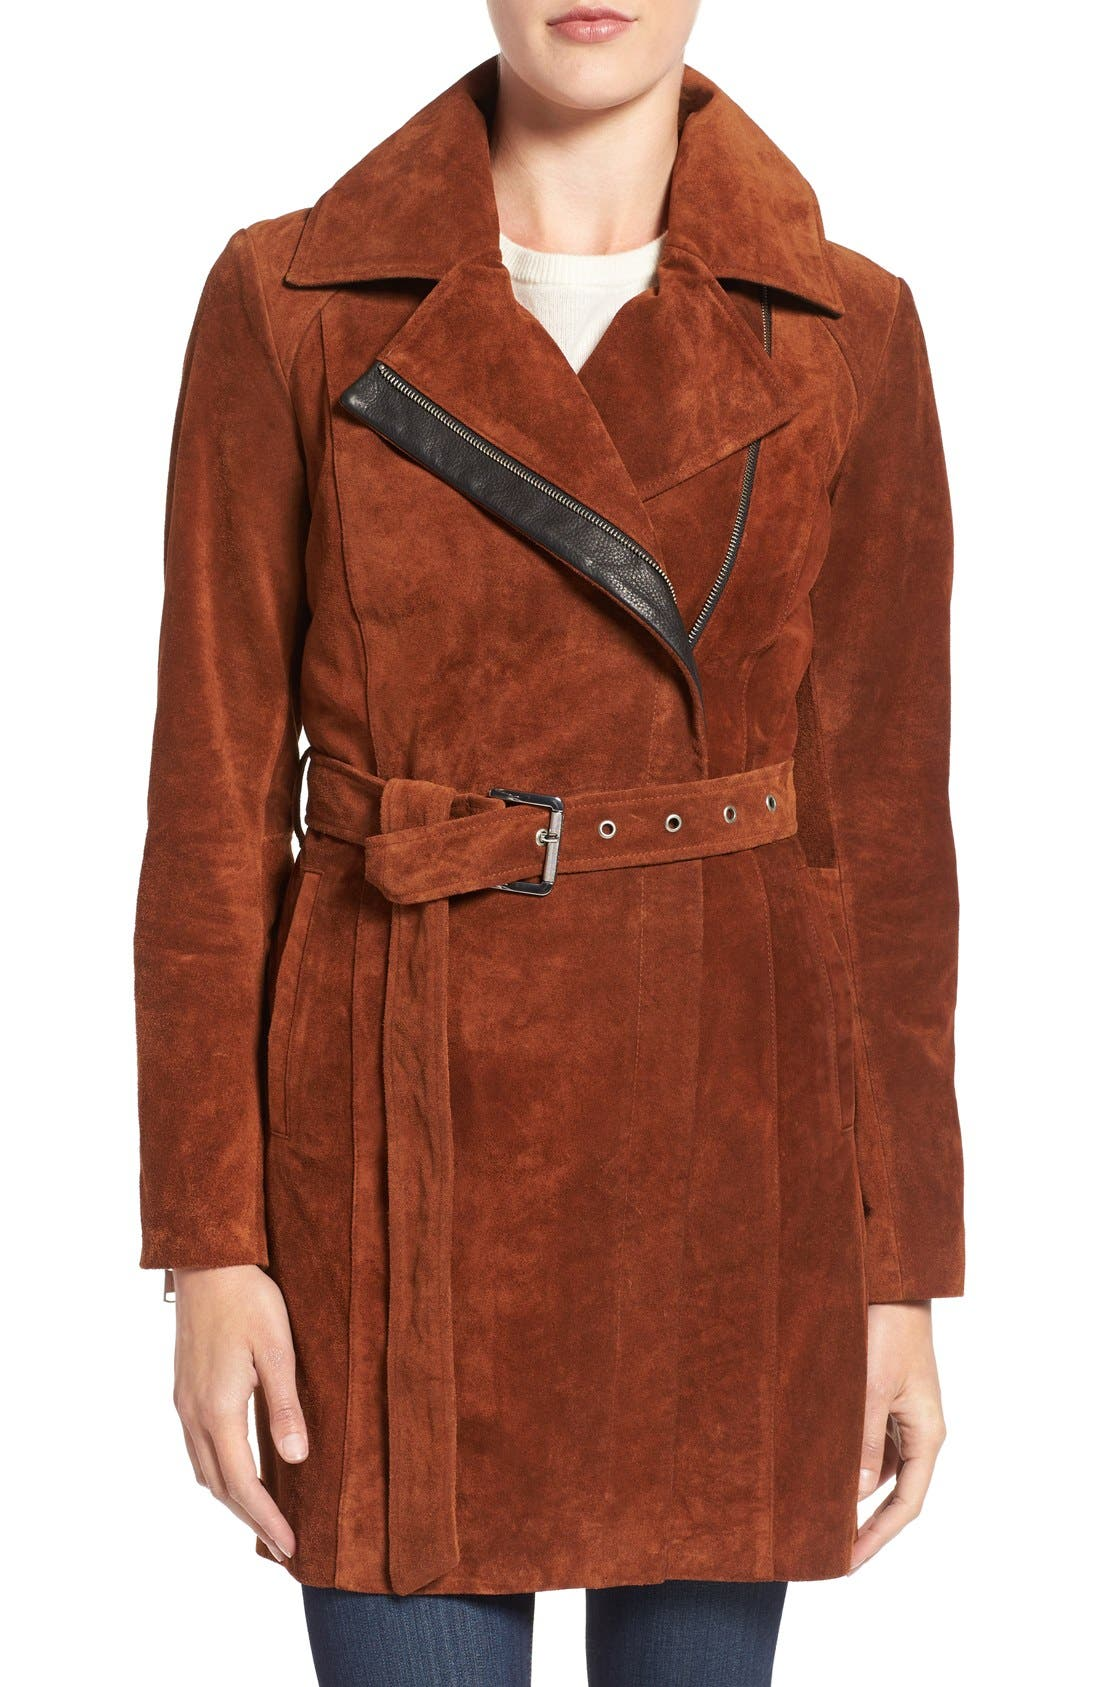 Main Image - Andrew Marc 'Sienna 33' Suede Belted Trench Coat